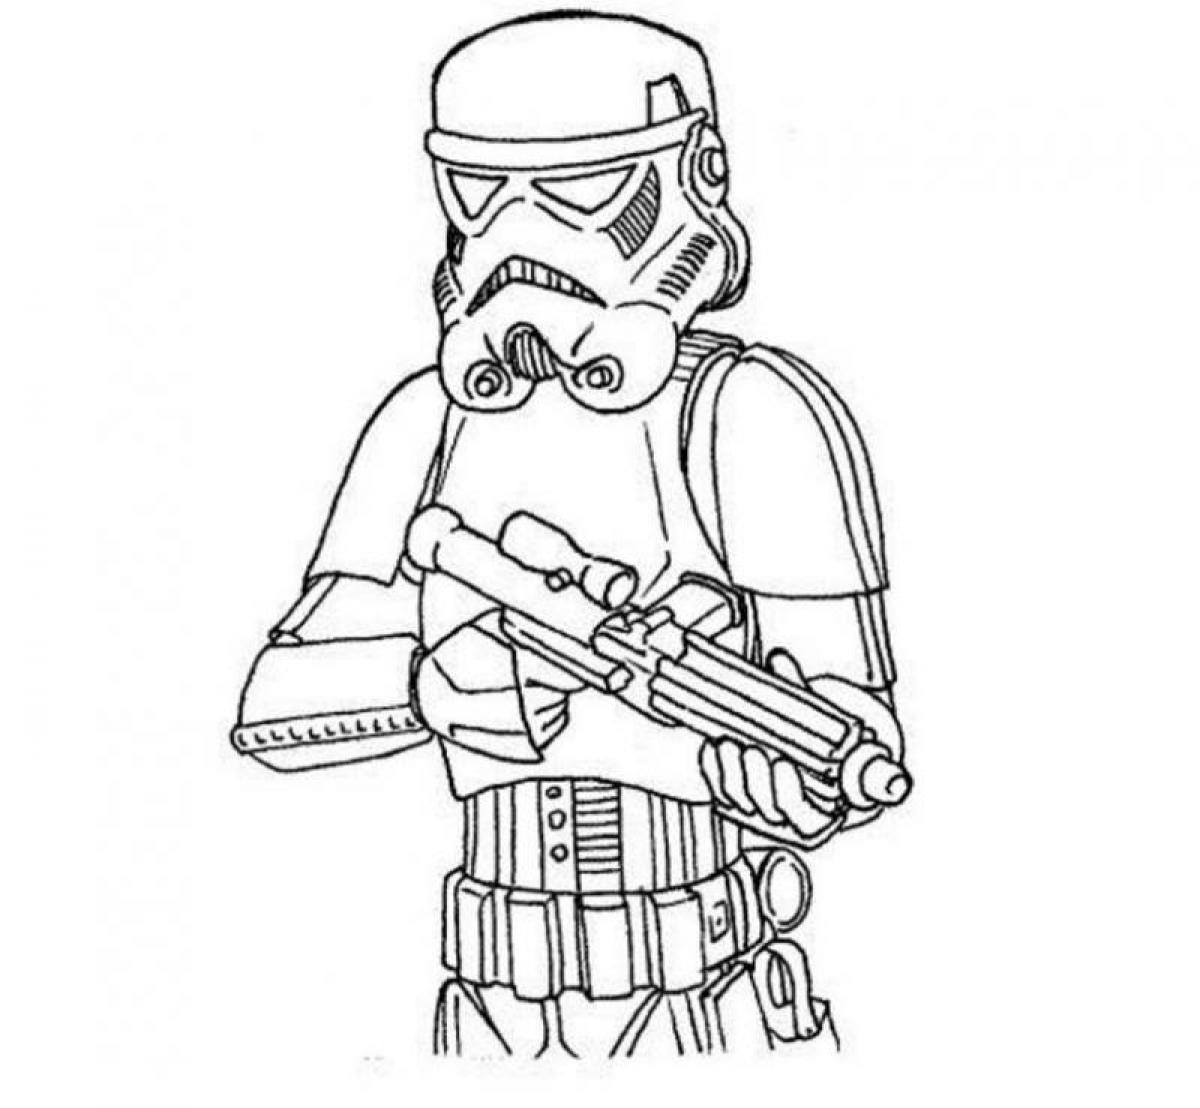 star warsa coloring pages | star wars stormtrooper coloring page || PINTEREST star ...